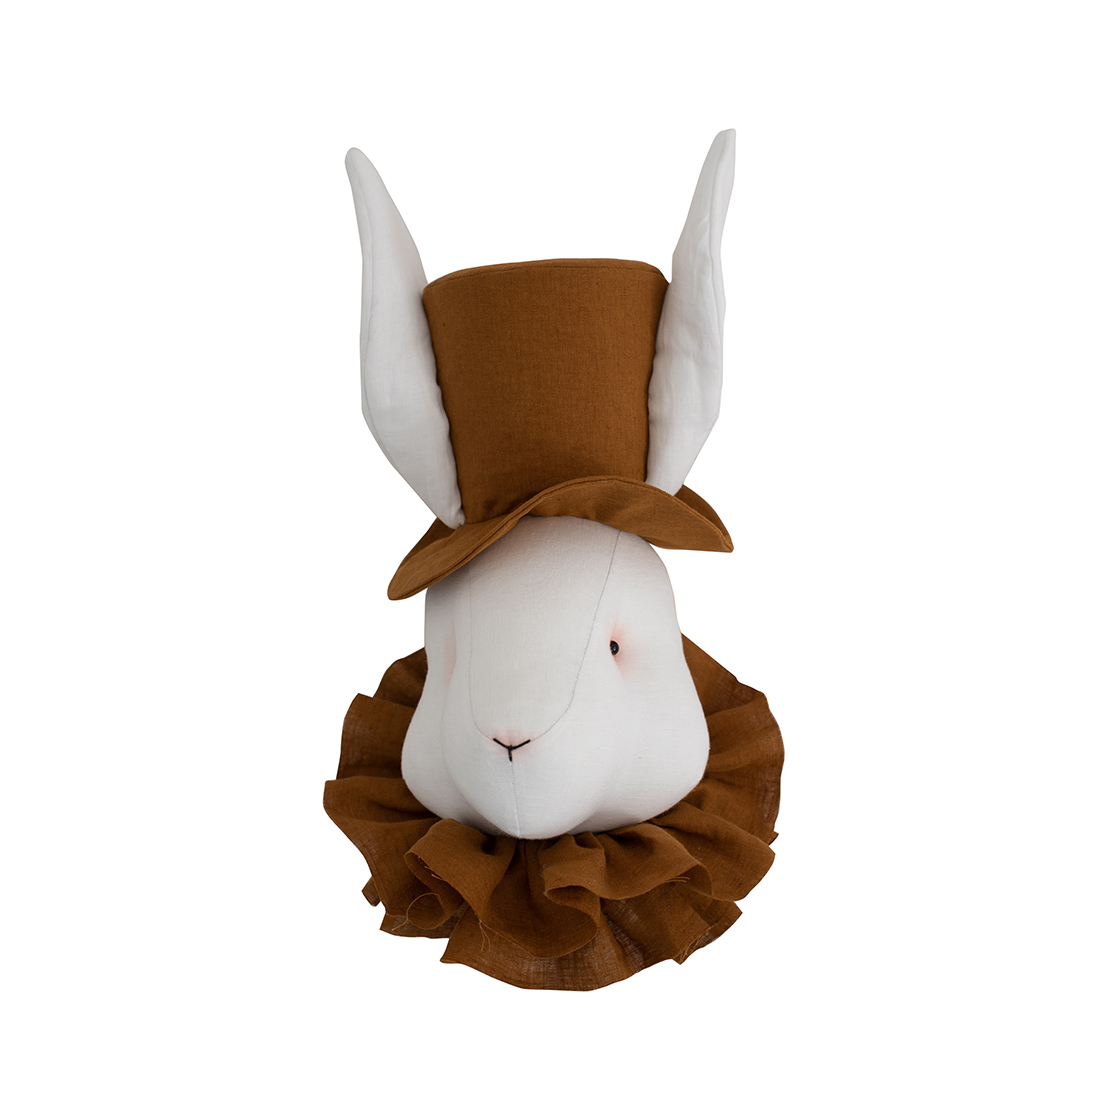 Linen rabbit with a mustard hat